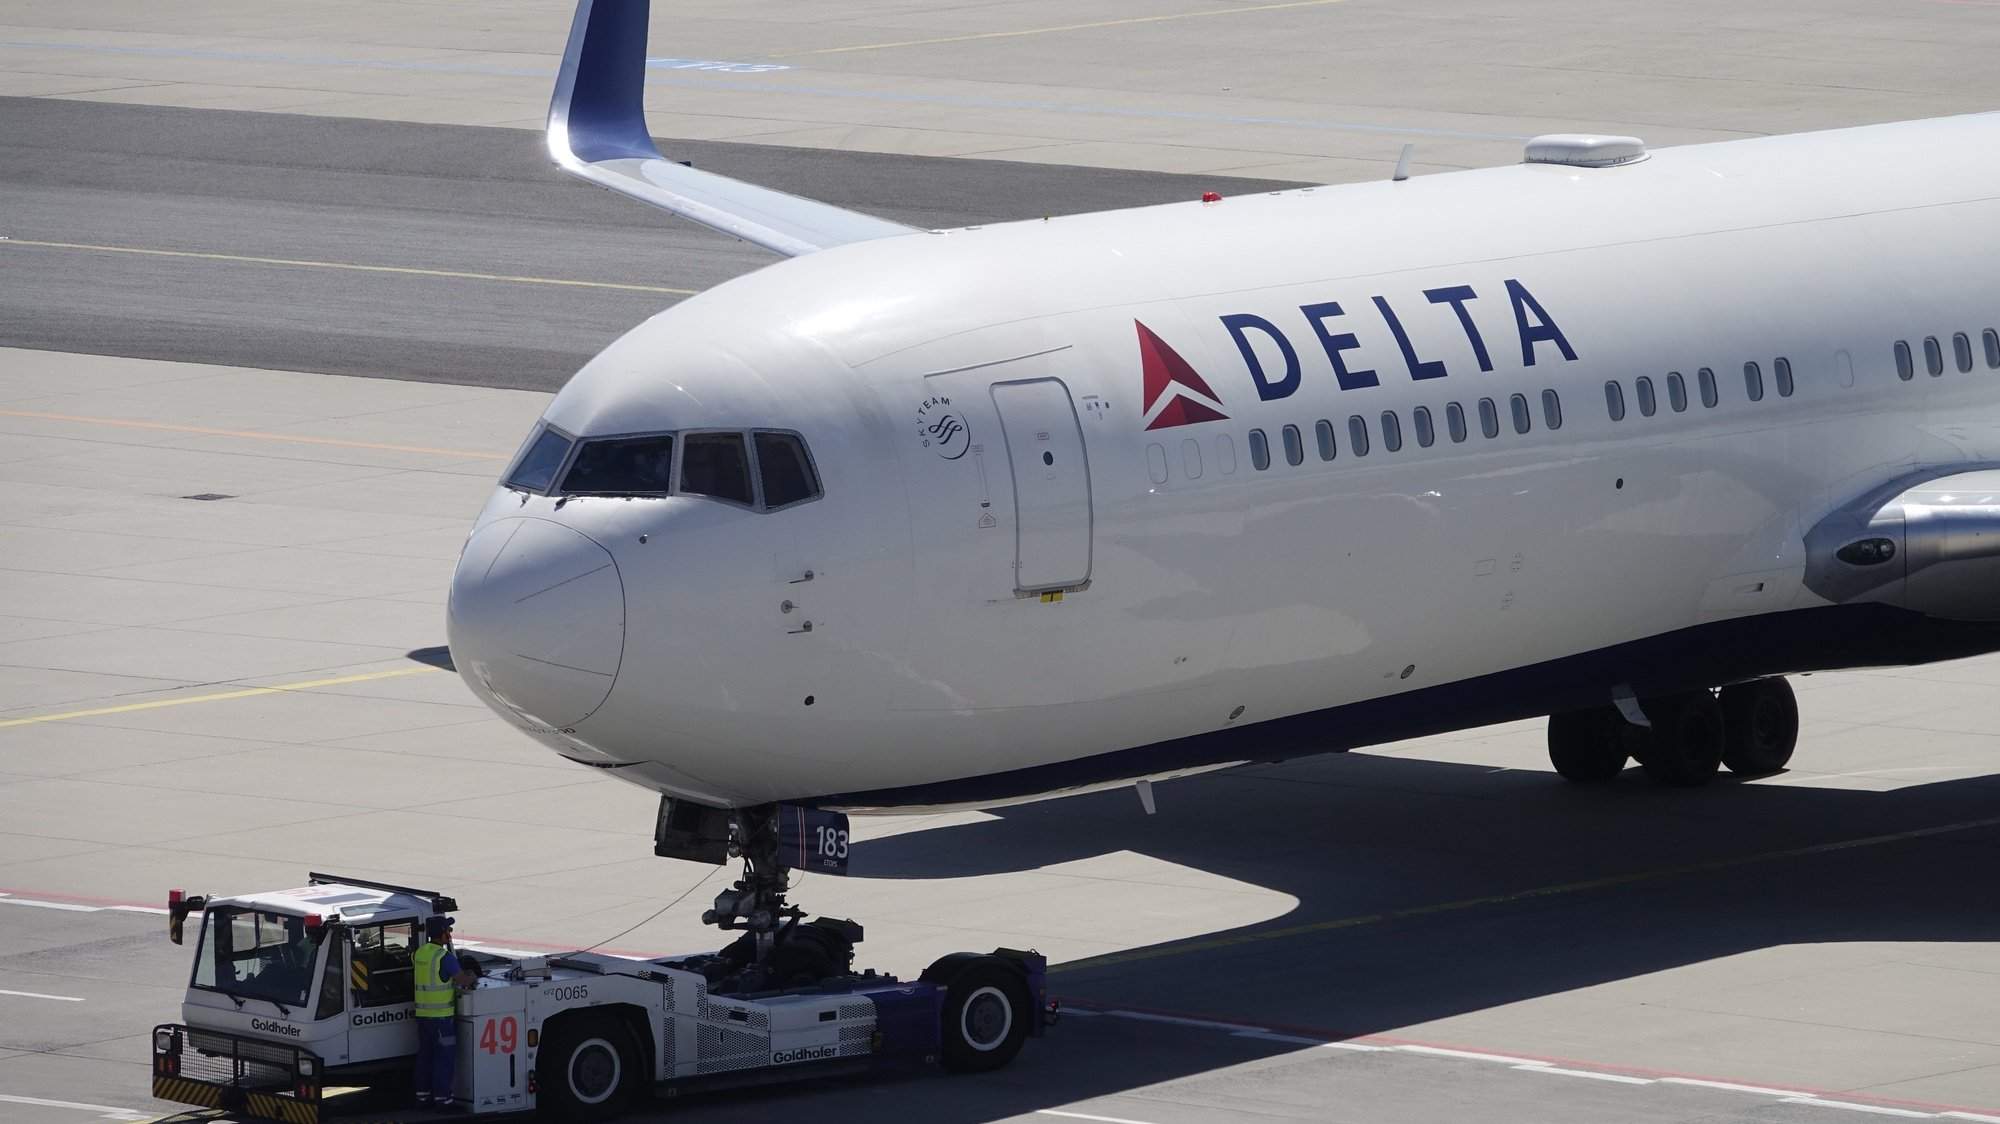 epa08937237 (FILE) - A Boeing 767-332 of Delta Air Lines is moved from the parking position prior to take-off at the Frankfurt airport, Germany, 08 May 2018 (reissued 14 January 2021). Delta Airlines on 14 January 2021 released their 2020 results saying their December quarter 2020 GAAP pre-tax loss stood at 1.1 billion USD and loss per share of 1.19 USD on total revenue of 4.0 billion USD, while December quarter 2020 adjusted pre-tax loss of 2.1 billion USD and adjusted loss per share of 2.53 USD on adjusted operating revenue of 3.5 billion USD. Full year 2020 GAAP pre-tax loss stood at 15.6 billion USD and loss per share of 19.49 USD on total revenue of 17.1 billion USD. Full year 2020 adjusted pre-tax loss was 9.0 billion and adjusted loss per share of 10.76 USD on adjusted operating revenue of 15.9 billion USD.  EPA/MAURITZ ANTIN *** Local Caption *** 54316176